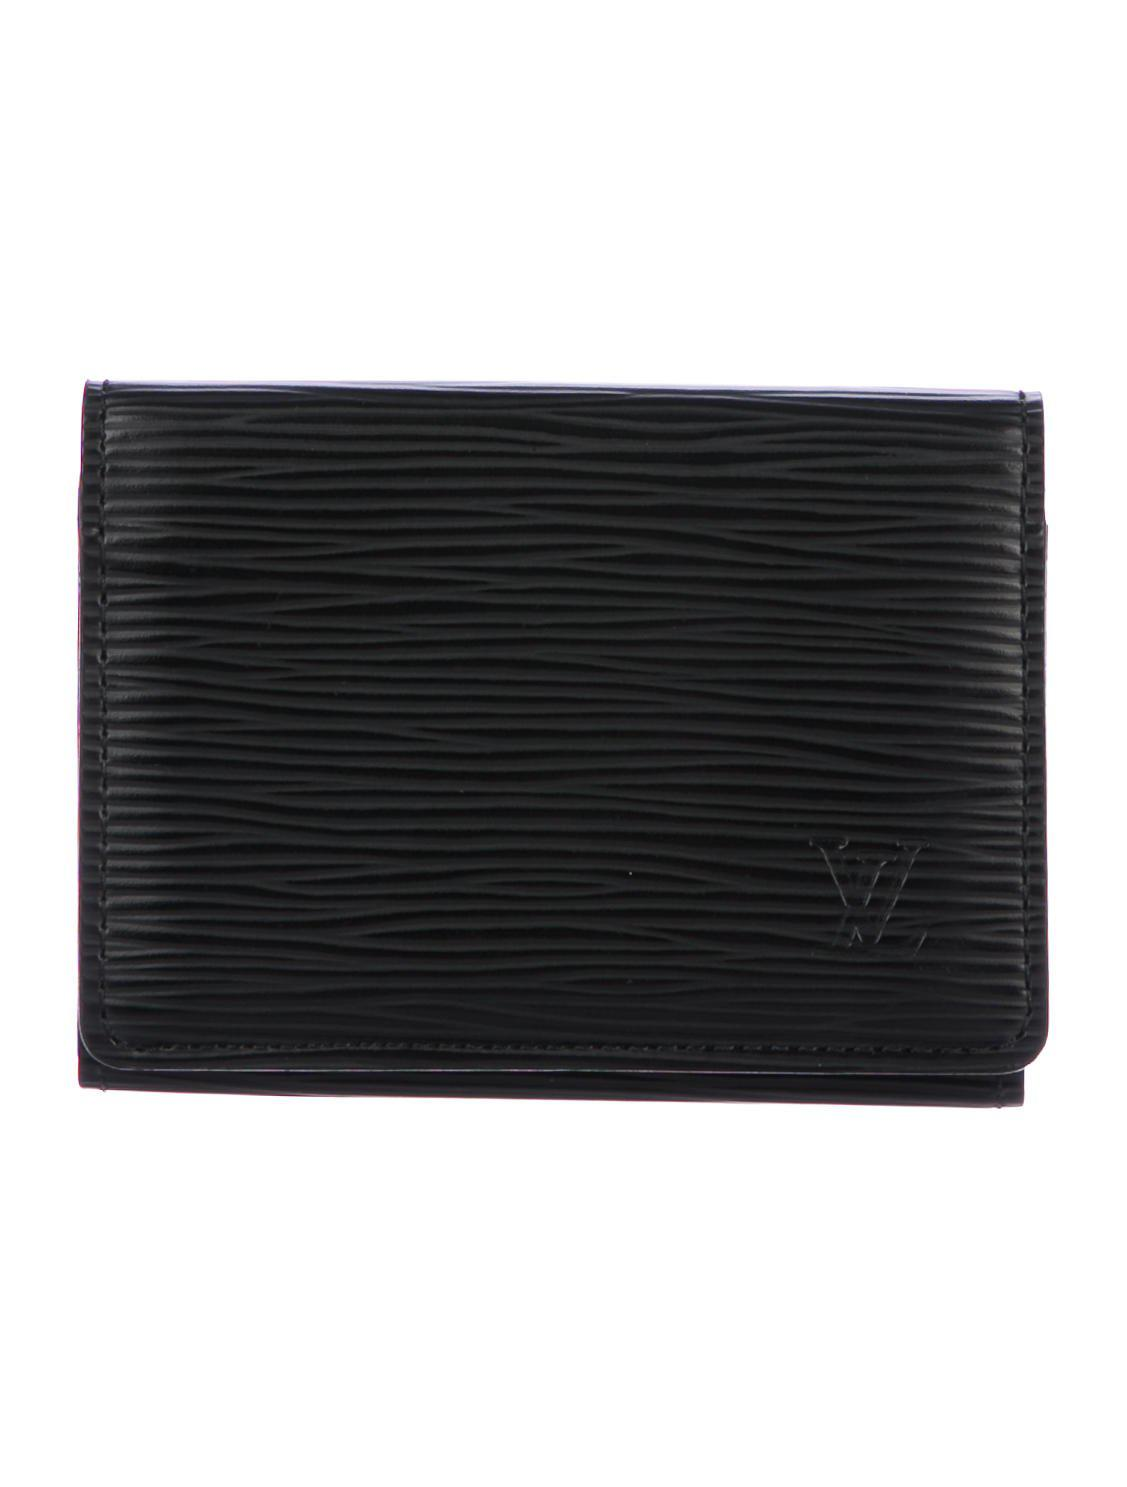 Lyst - Louis Vuitton Epi Leather Business Cardholder in Black for Men